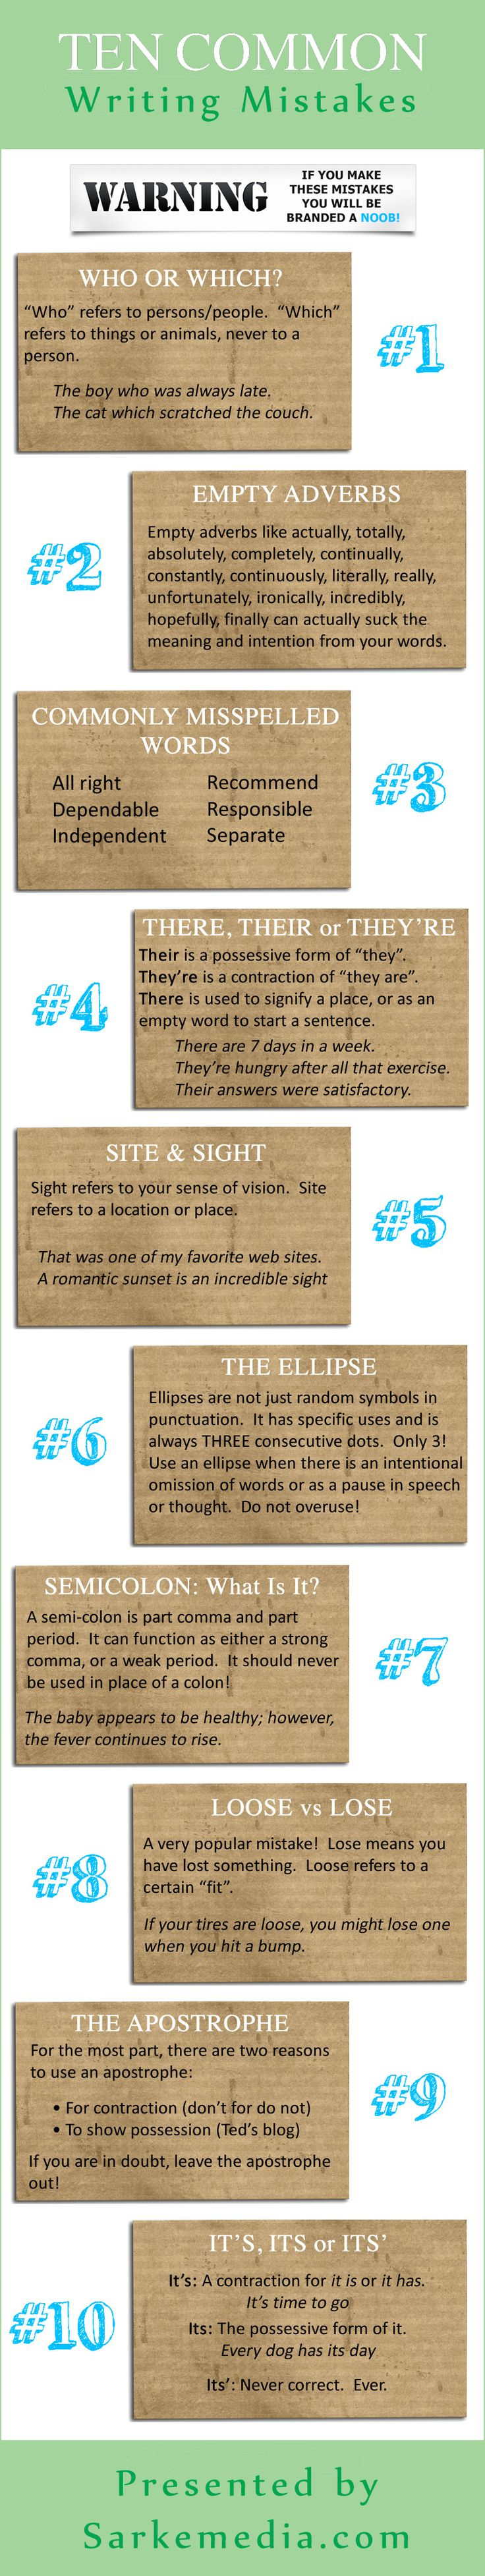 writing mistakes infographic copy 10 Writing Mistakes [Infographic] Which ones are you making?